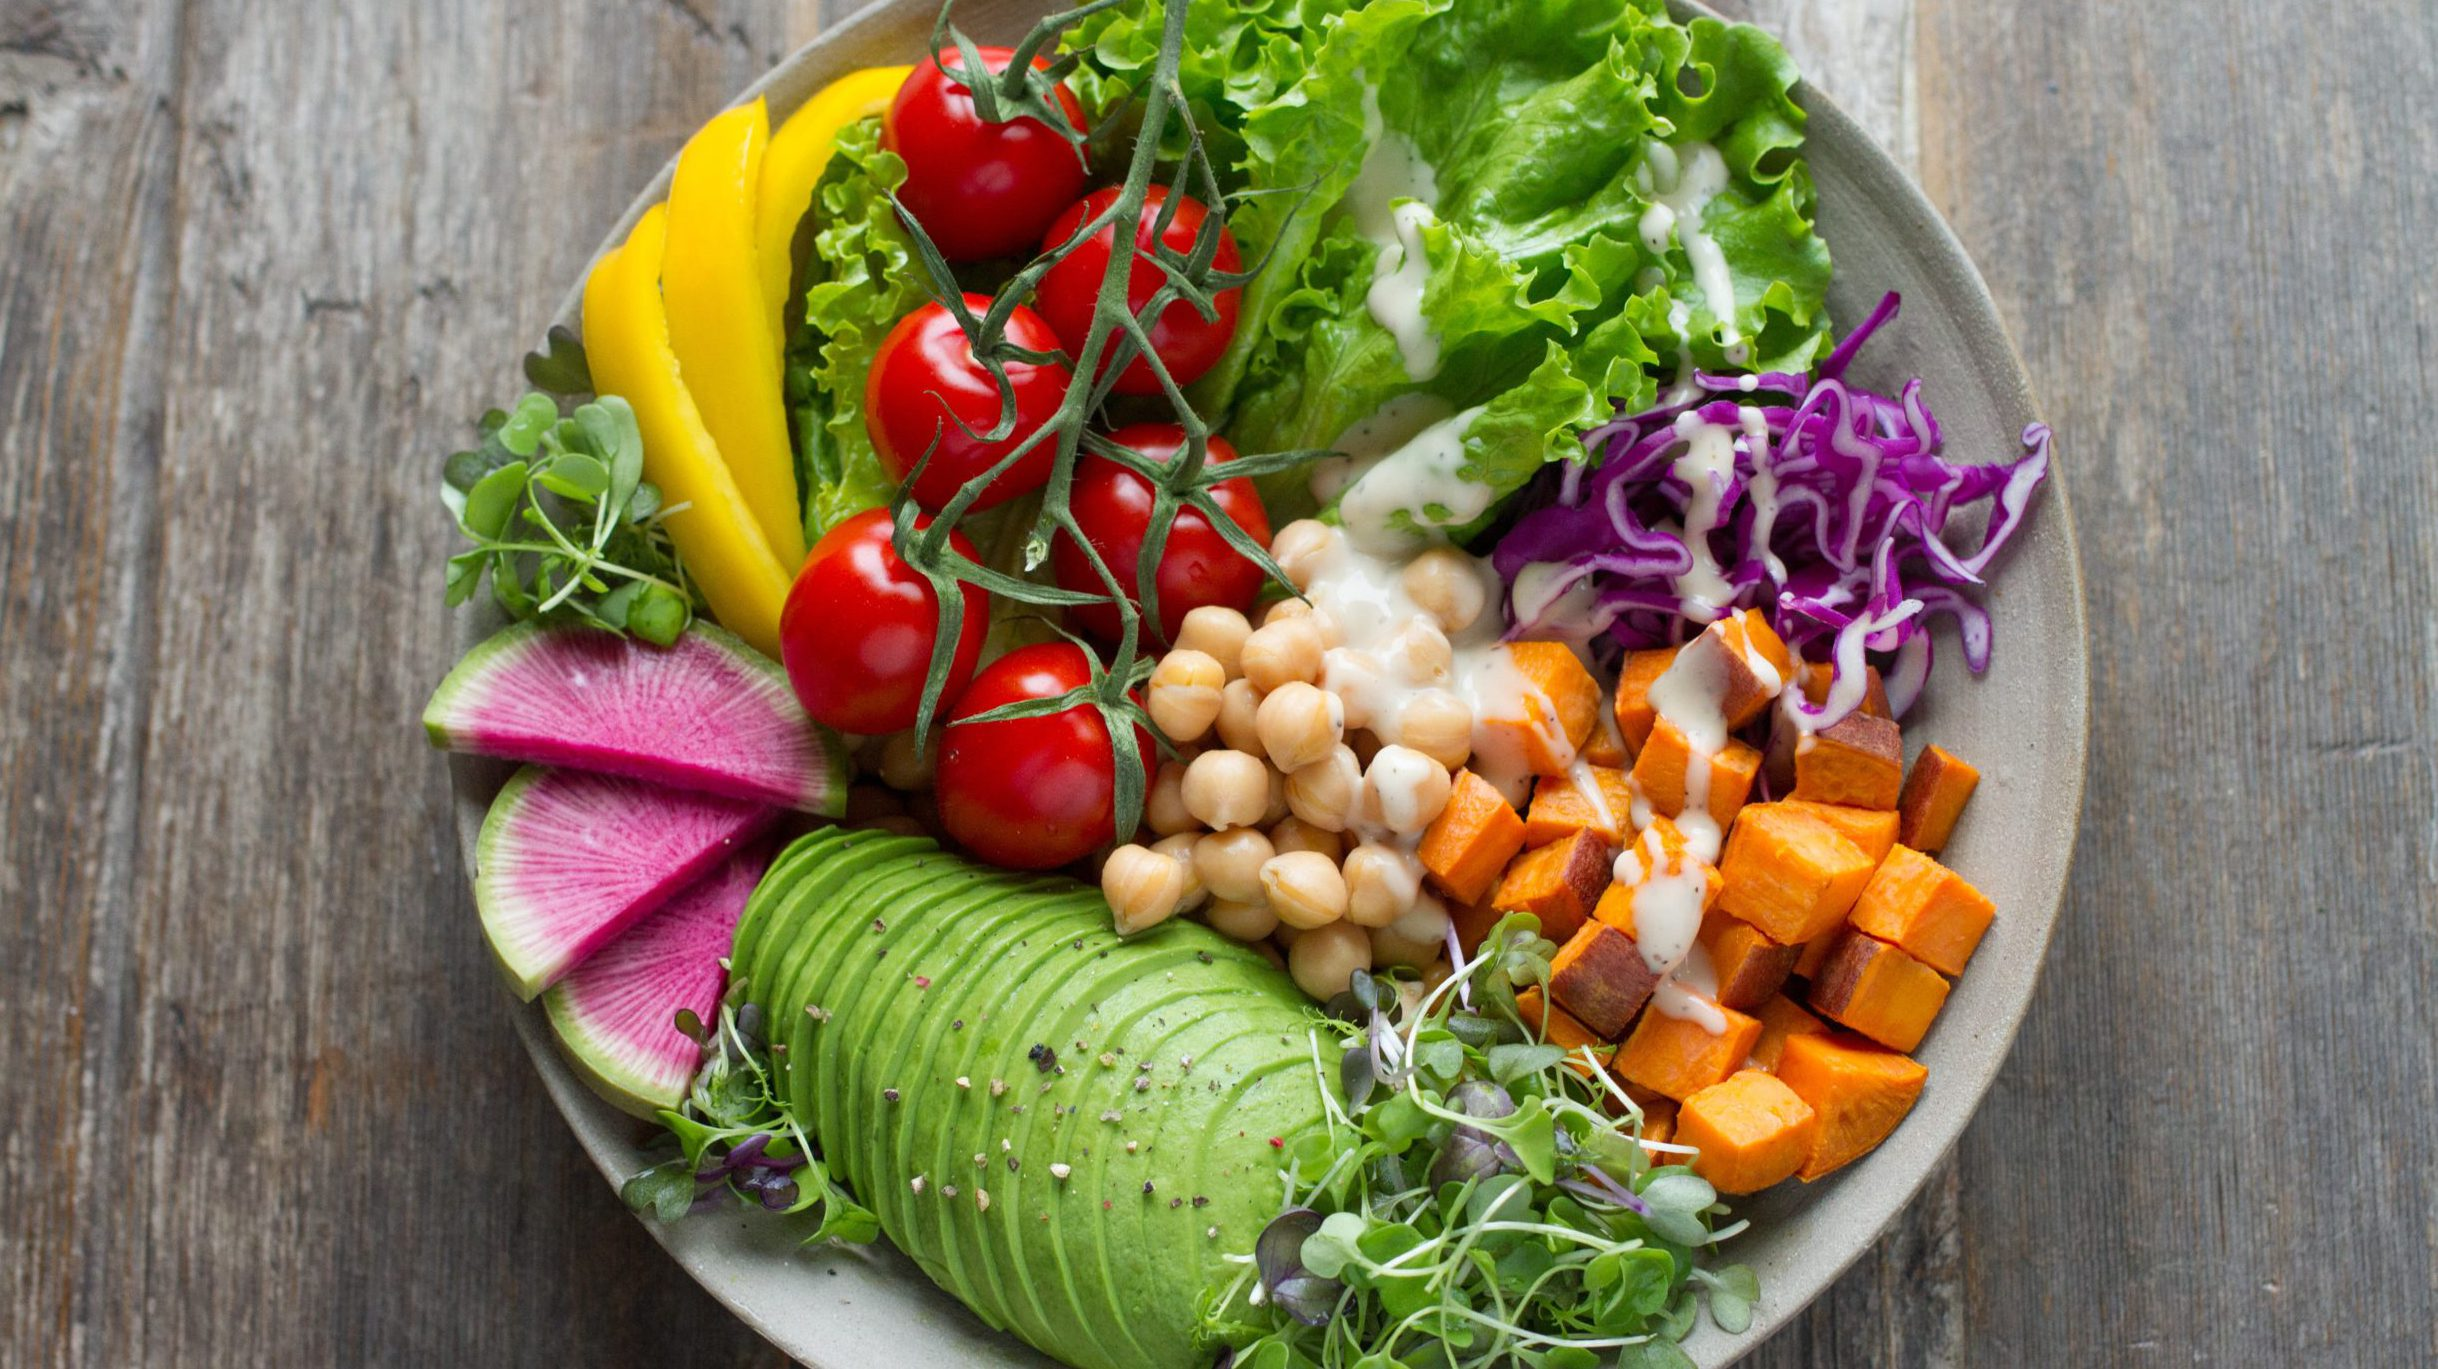 New Dietary Guidelines Leave Sugar, Alcohol Limits Intact